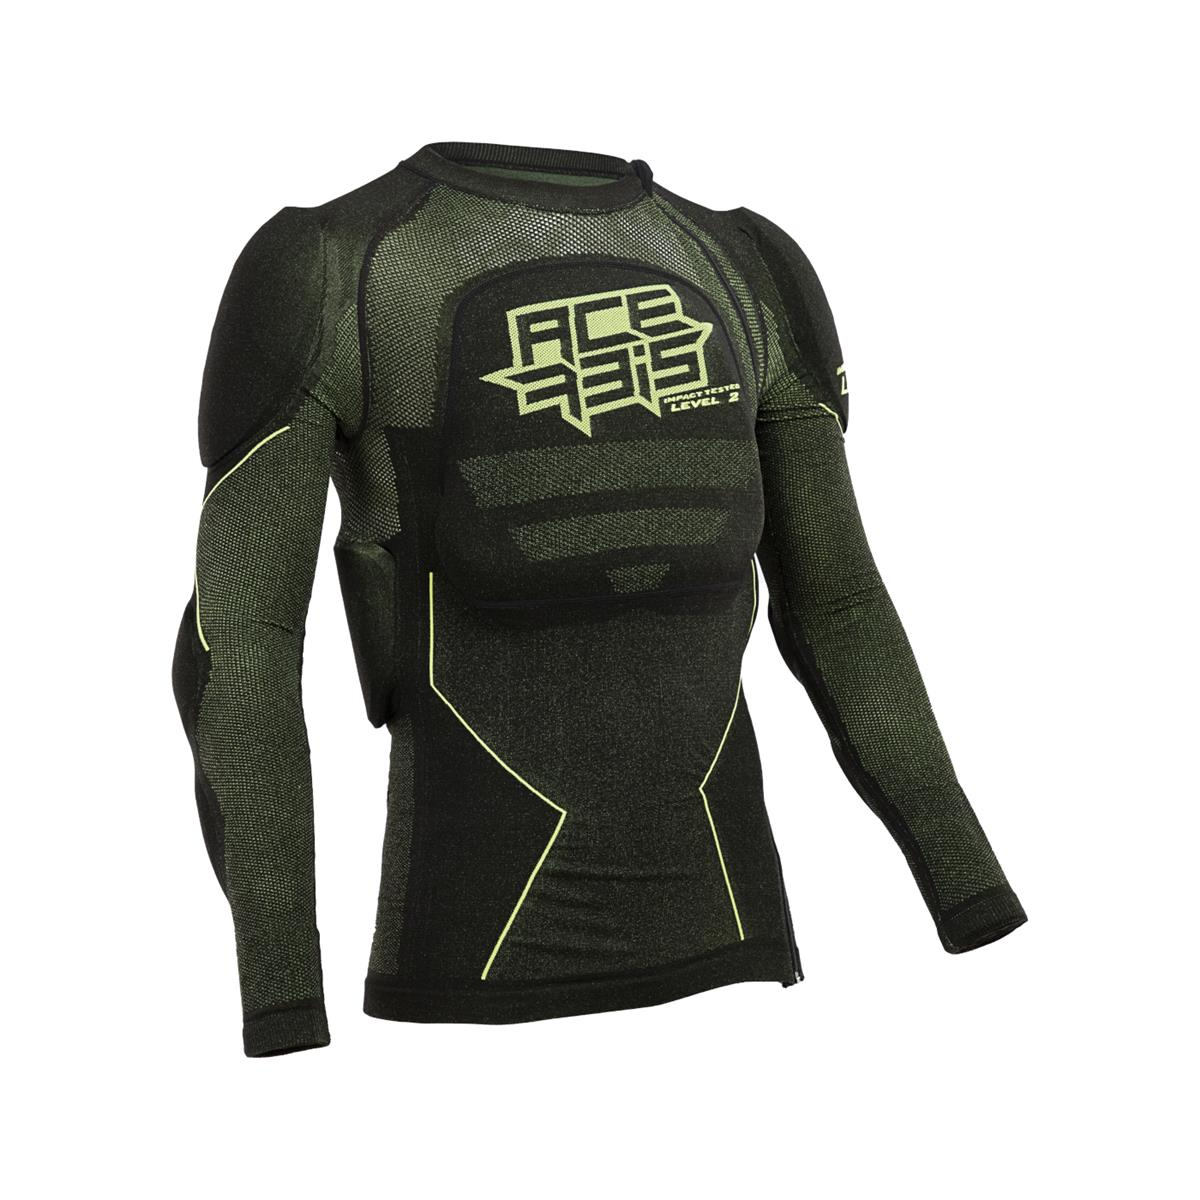 Body Armour X-Fit Future Level 2 Black/Yellow Size S/M